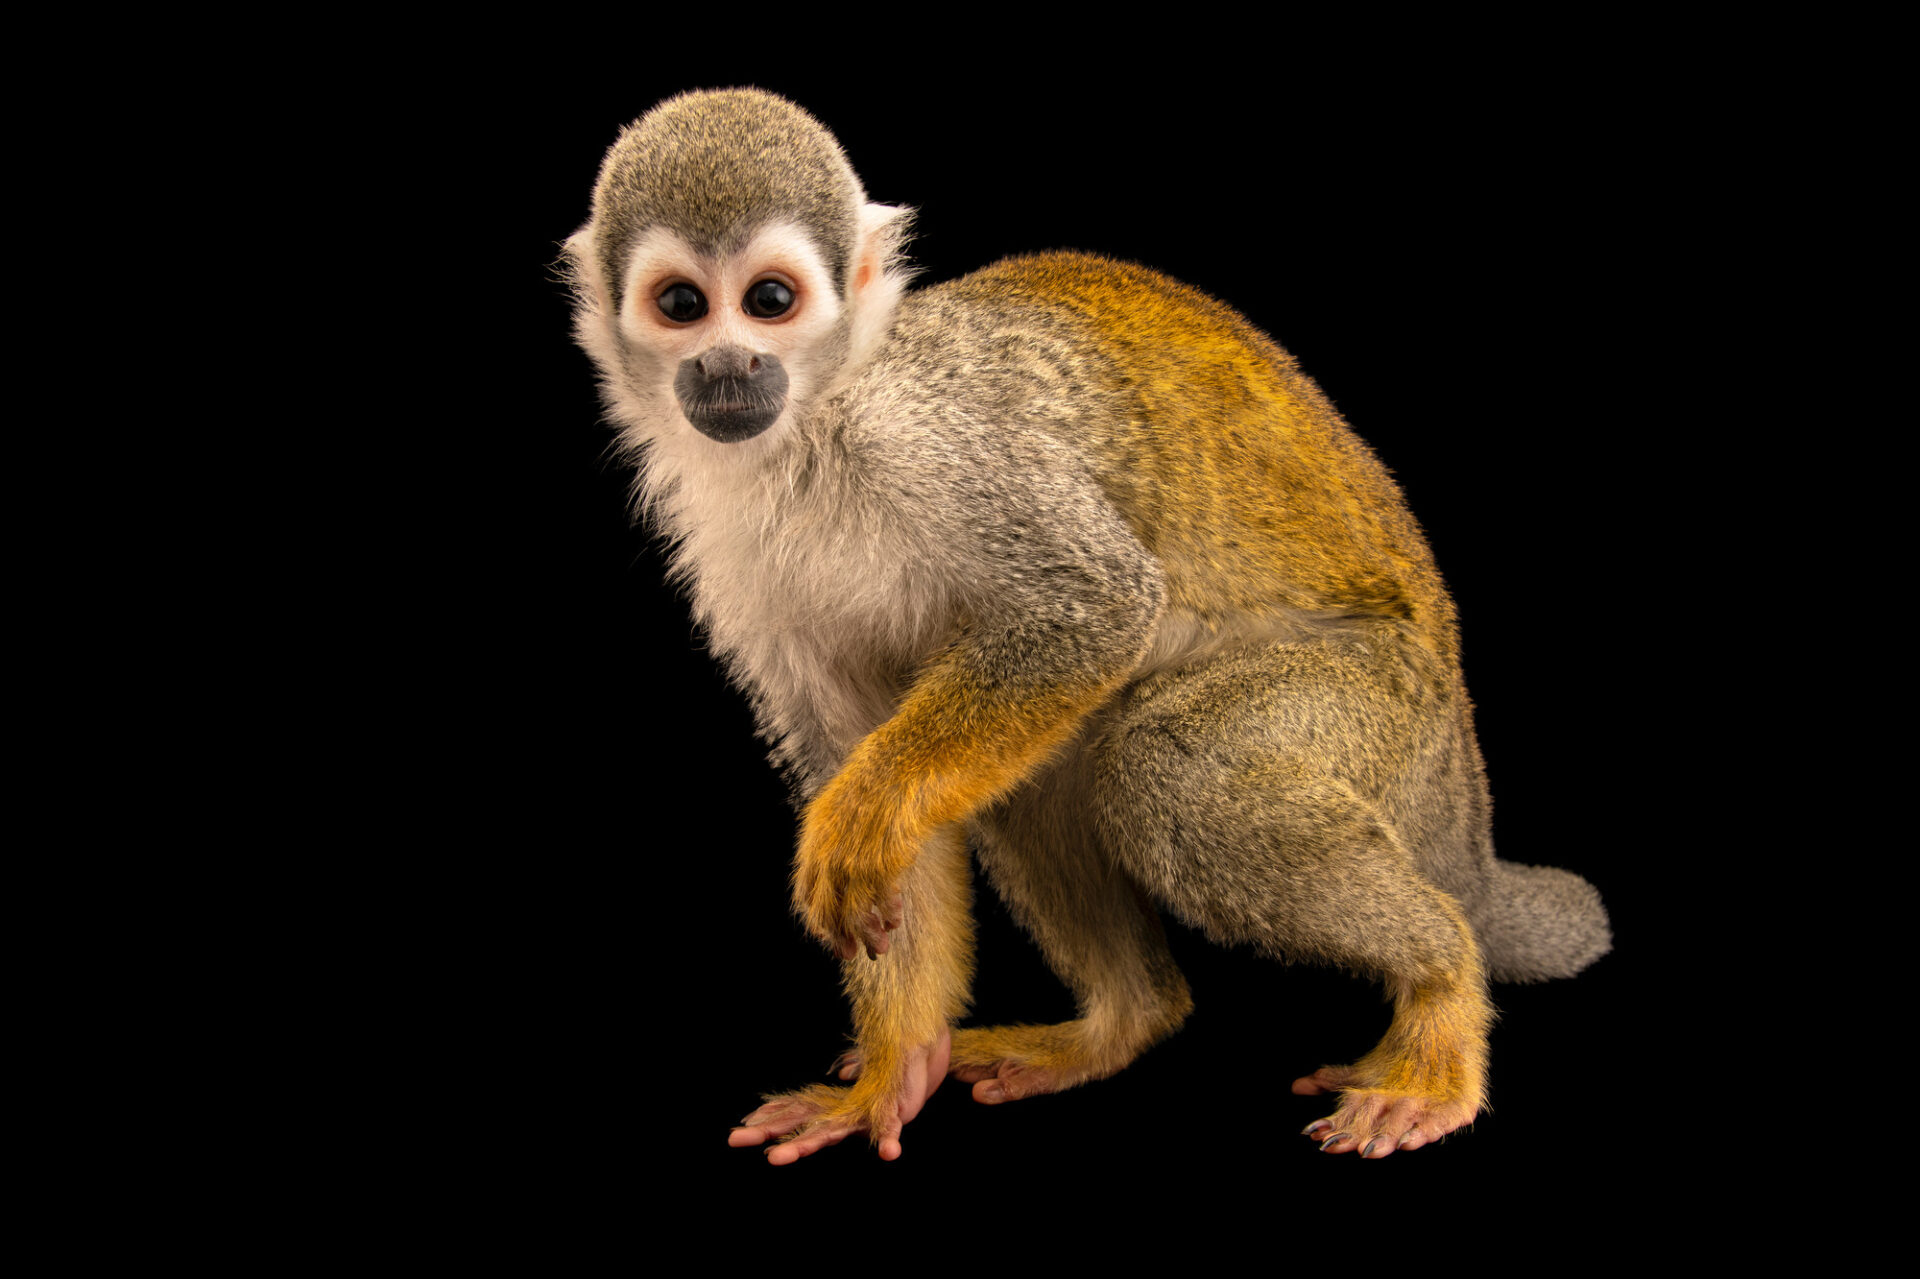 Photo: An Ecuadorian squirrel monkey (Saimiri cassiquiarensis) at Zoologico de Quito.